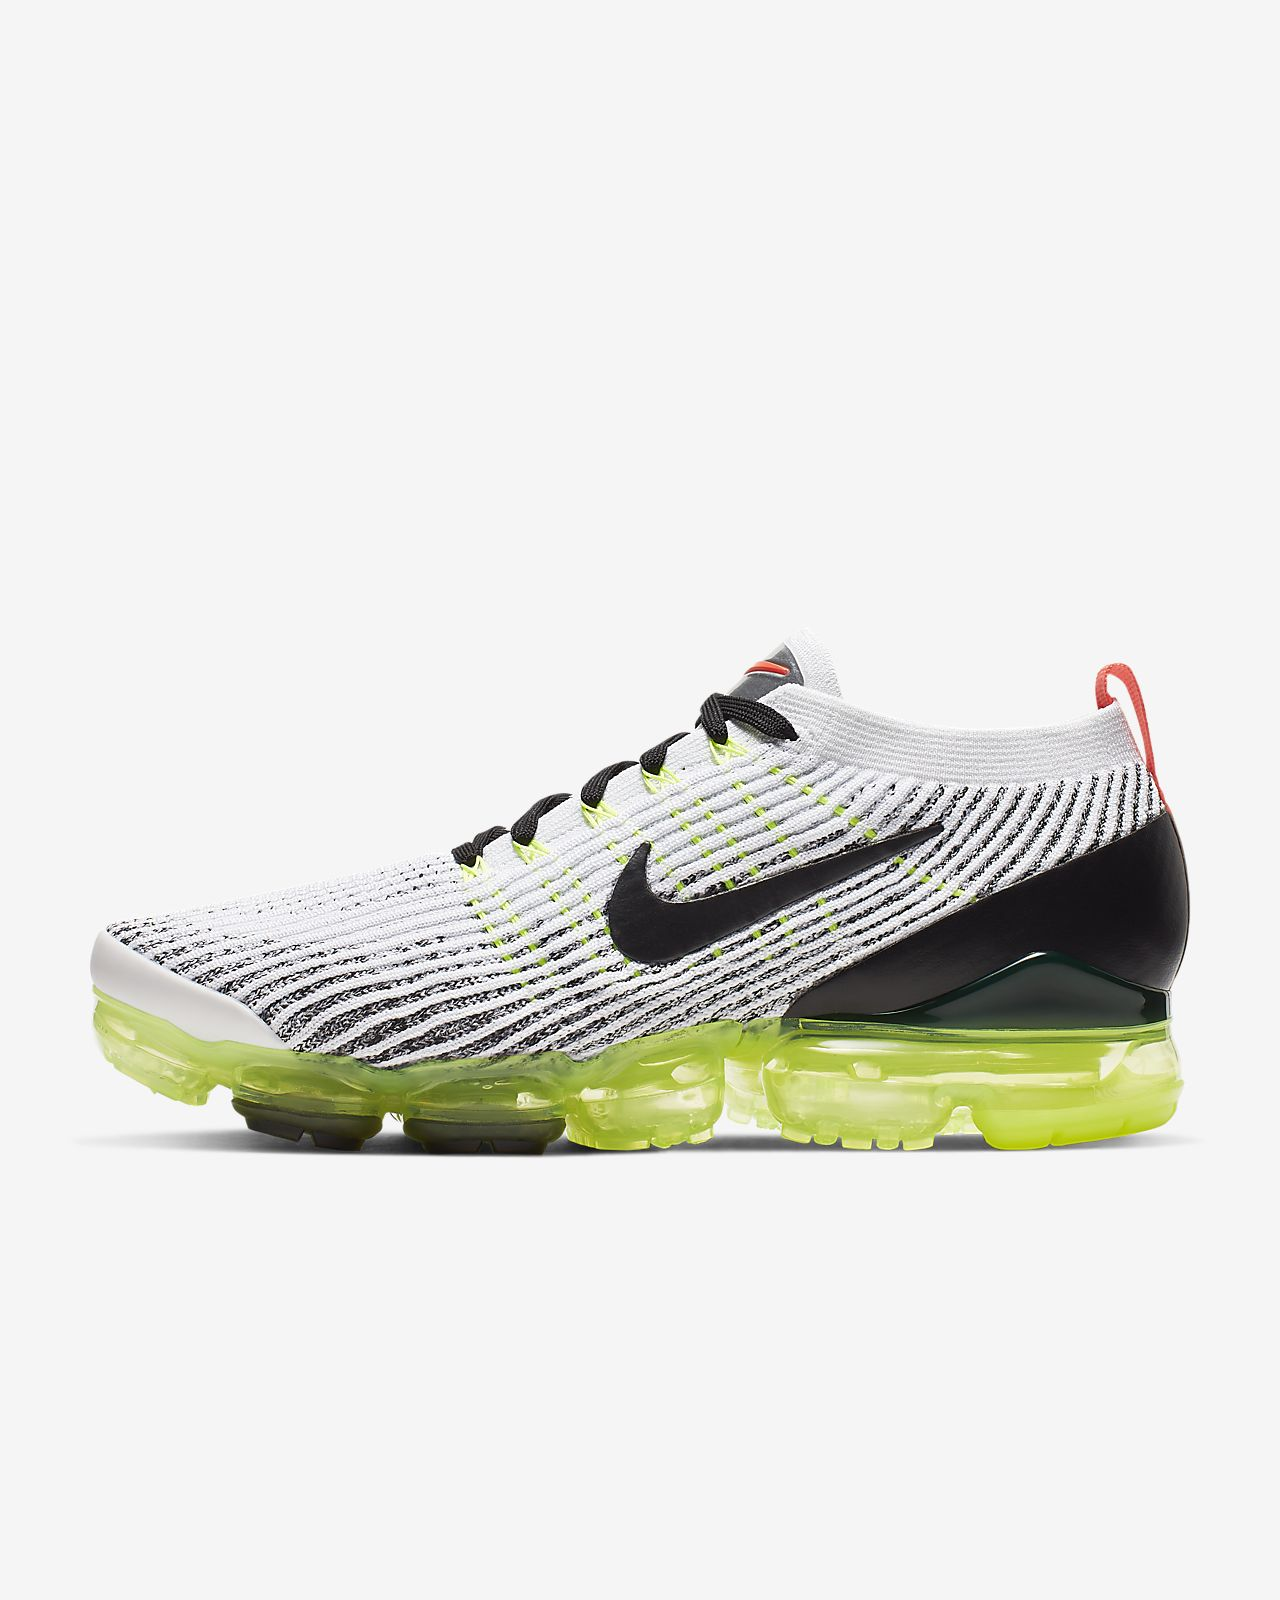 buy online 18297 b0af6 ... Chaussure Nike Air VaporMax Flyknit 3 pour Homme